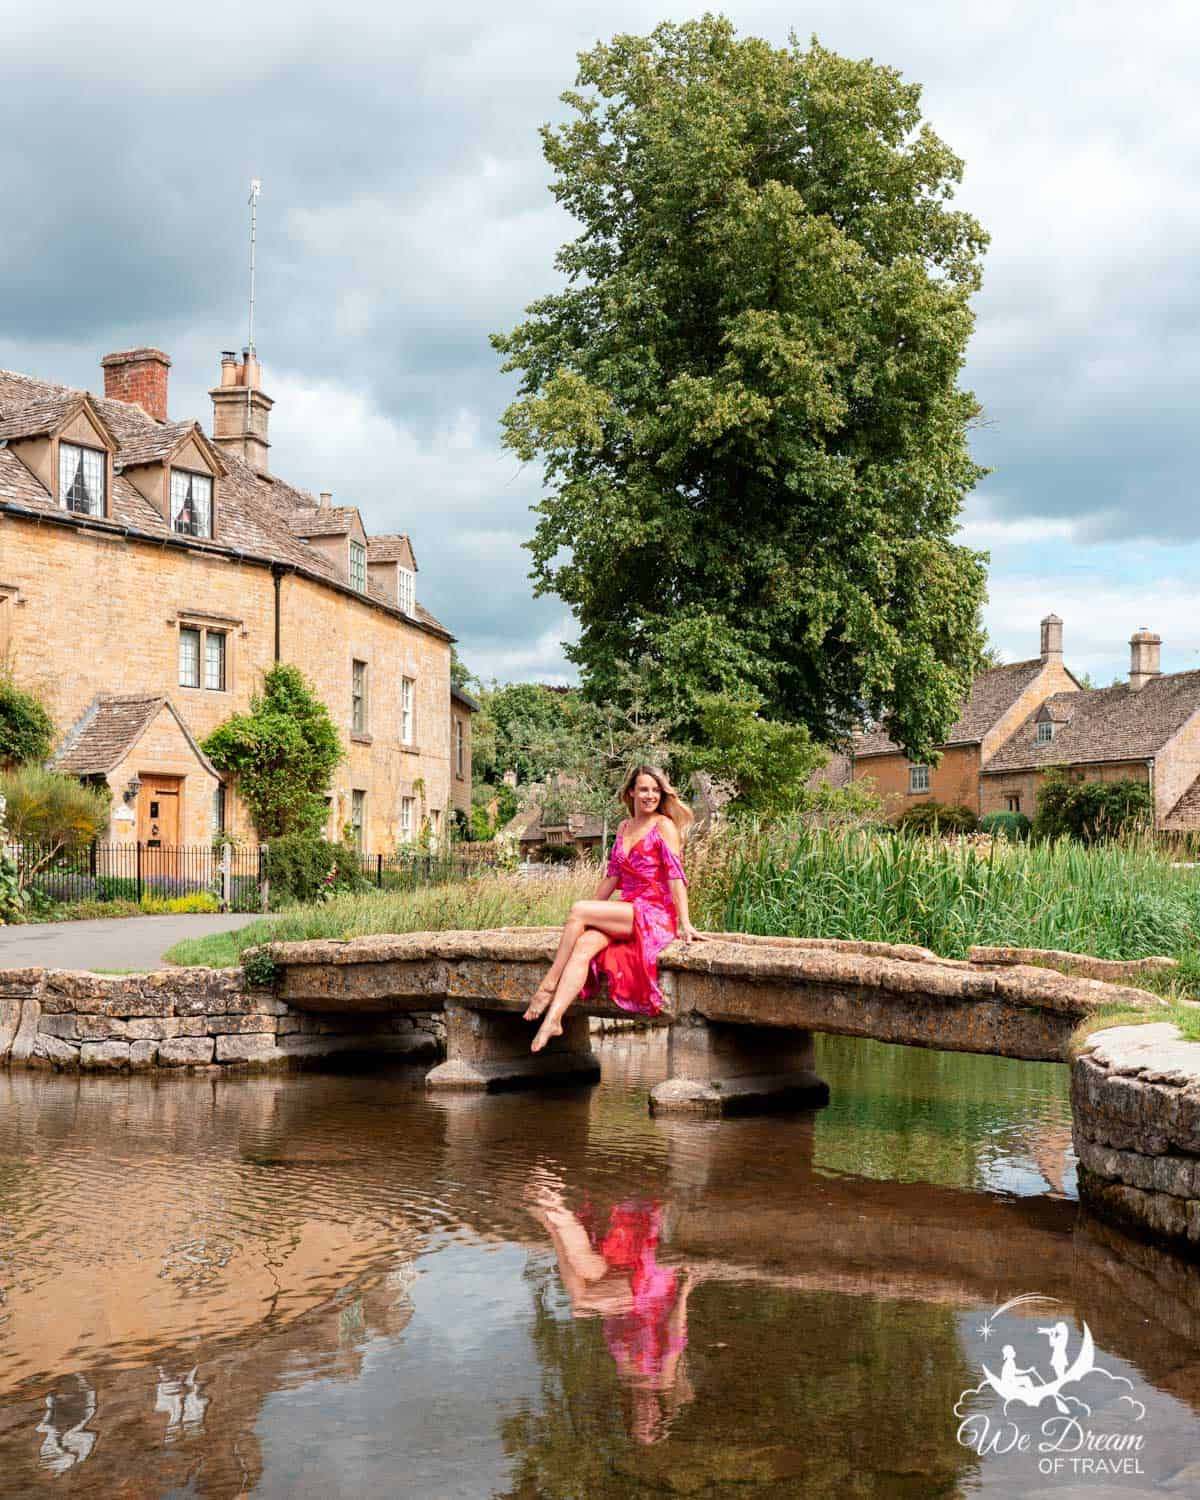 A girl sat on a footbridge in Lower Slaughter in the Cotswolds